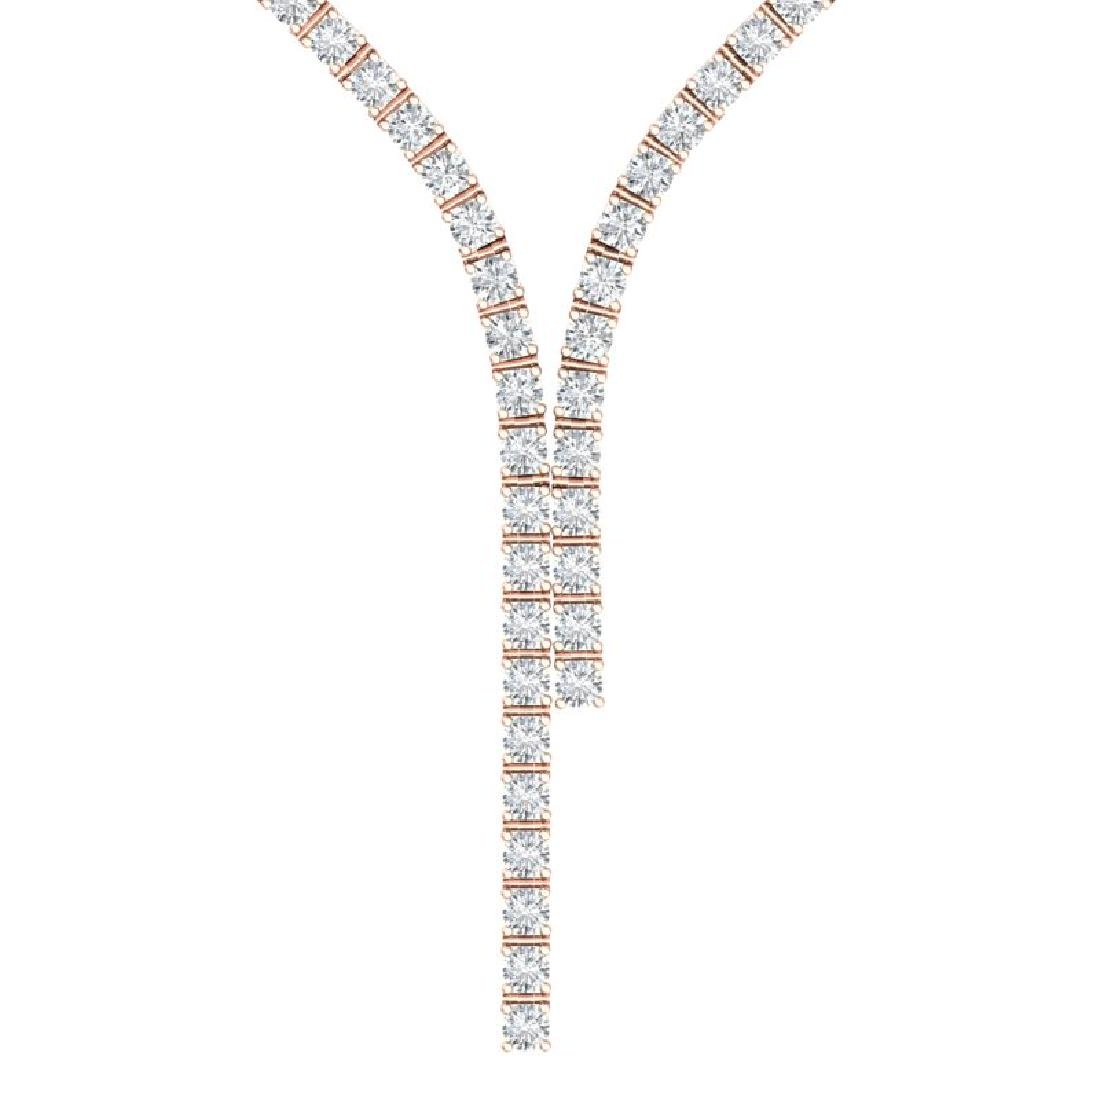 15 CTW Certified SI/I Diamond Necklace 18K Rose Gold